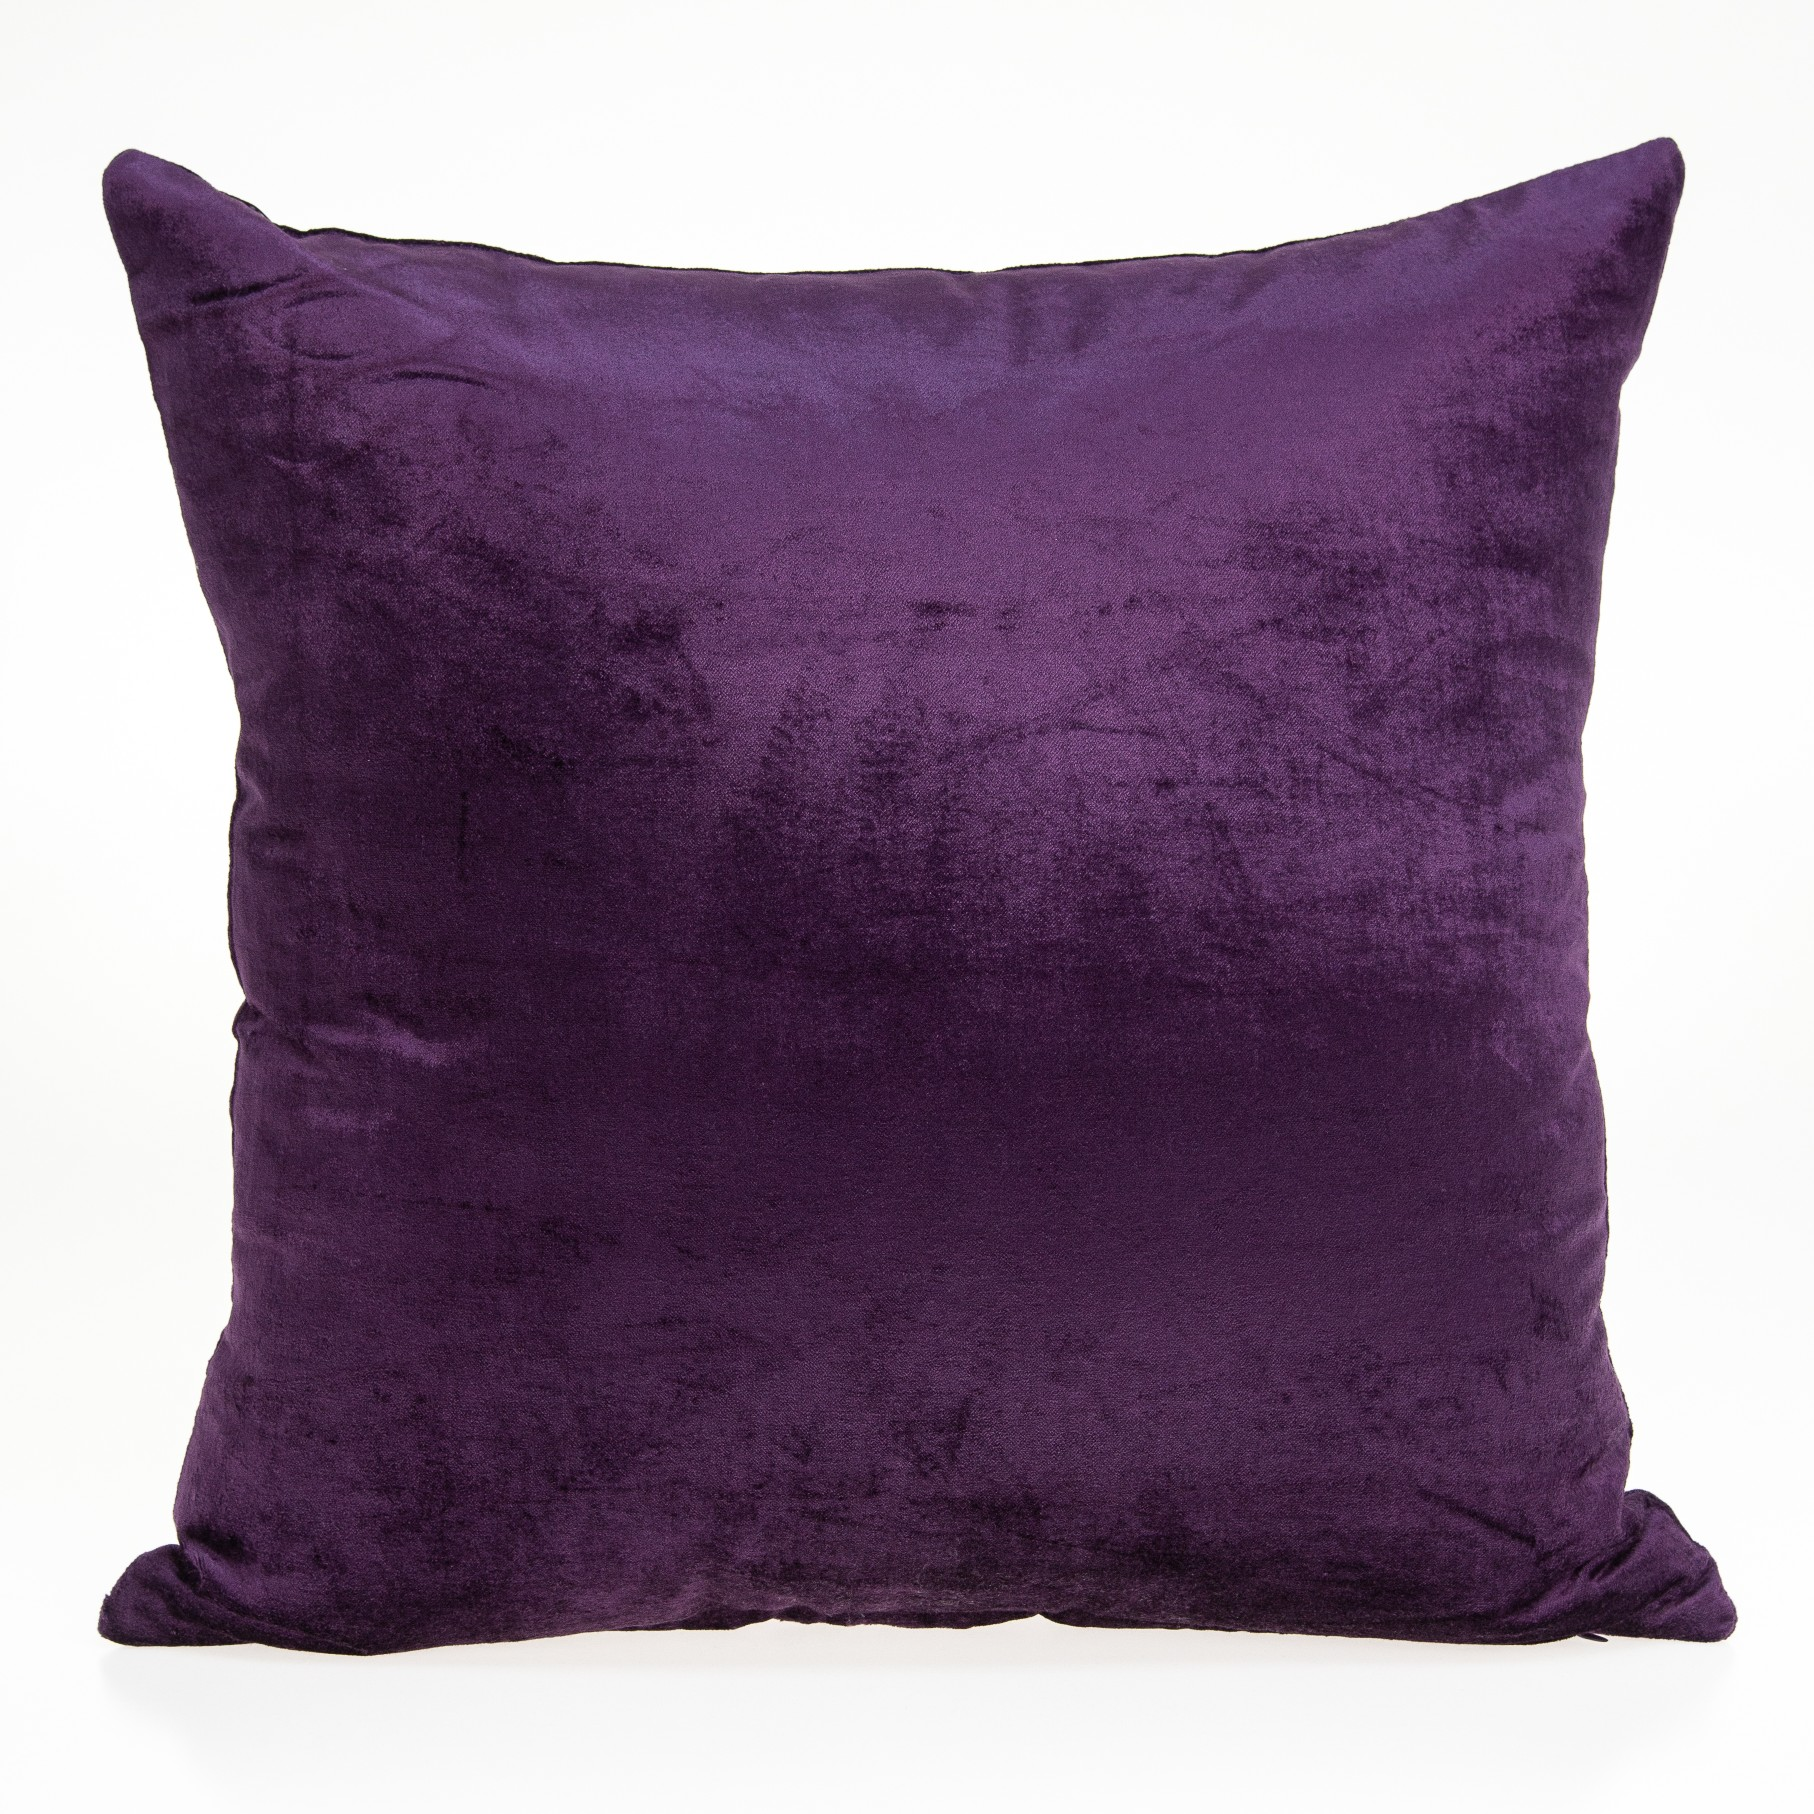 "22"" X 0.5"" X 22"" Transitional Purple Solid Pillow Cover"